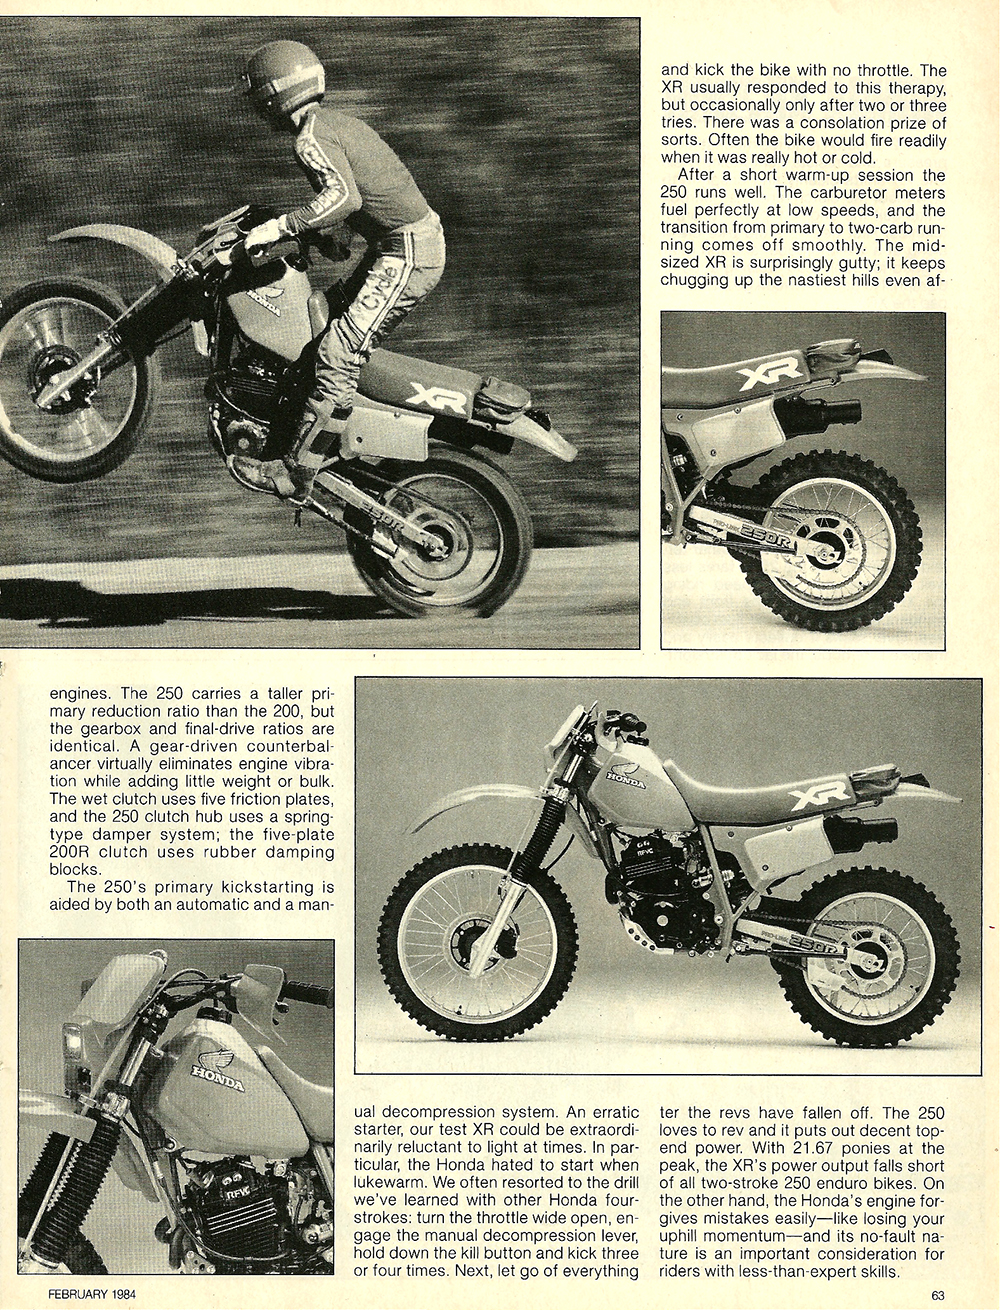 1984 Honda XR250R road test 4.jpg